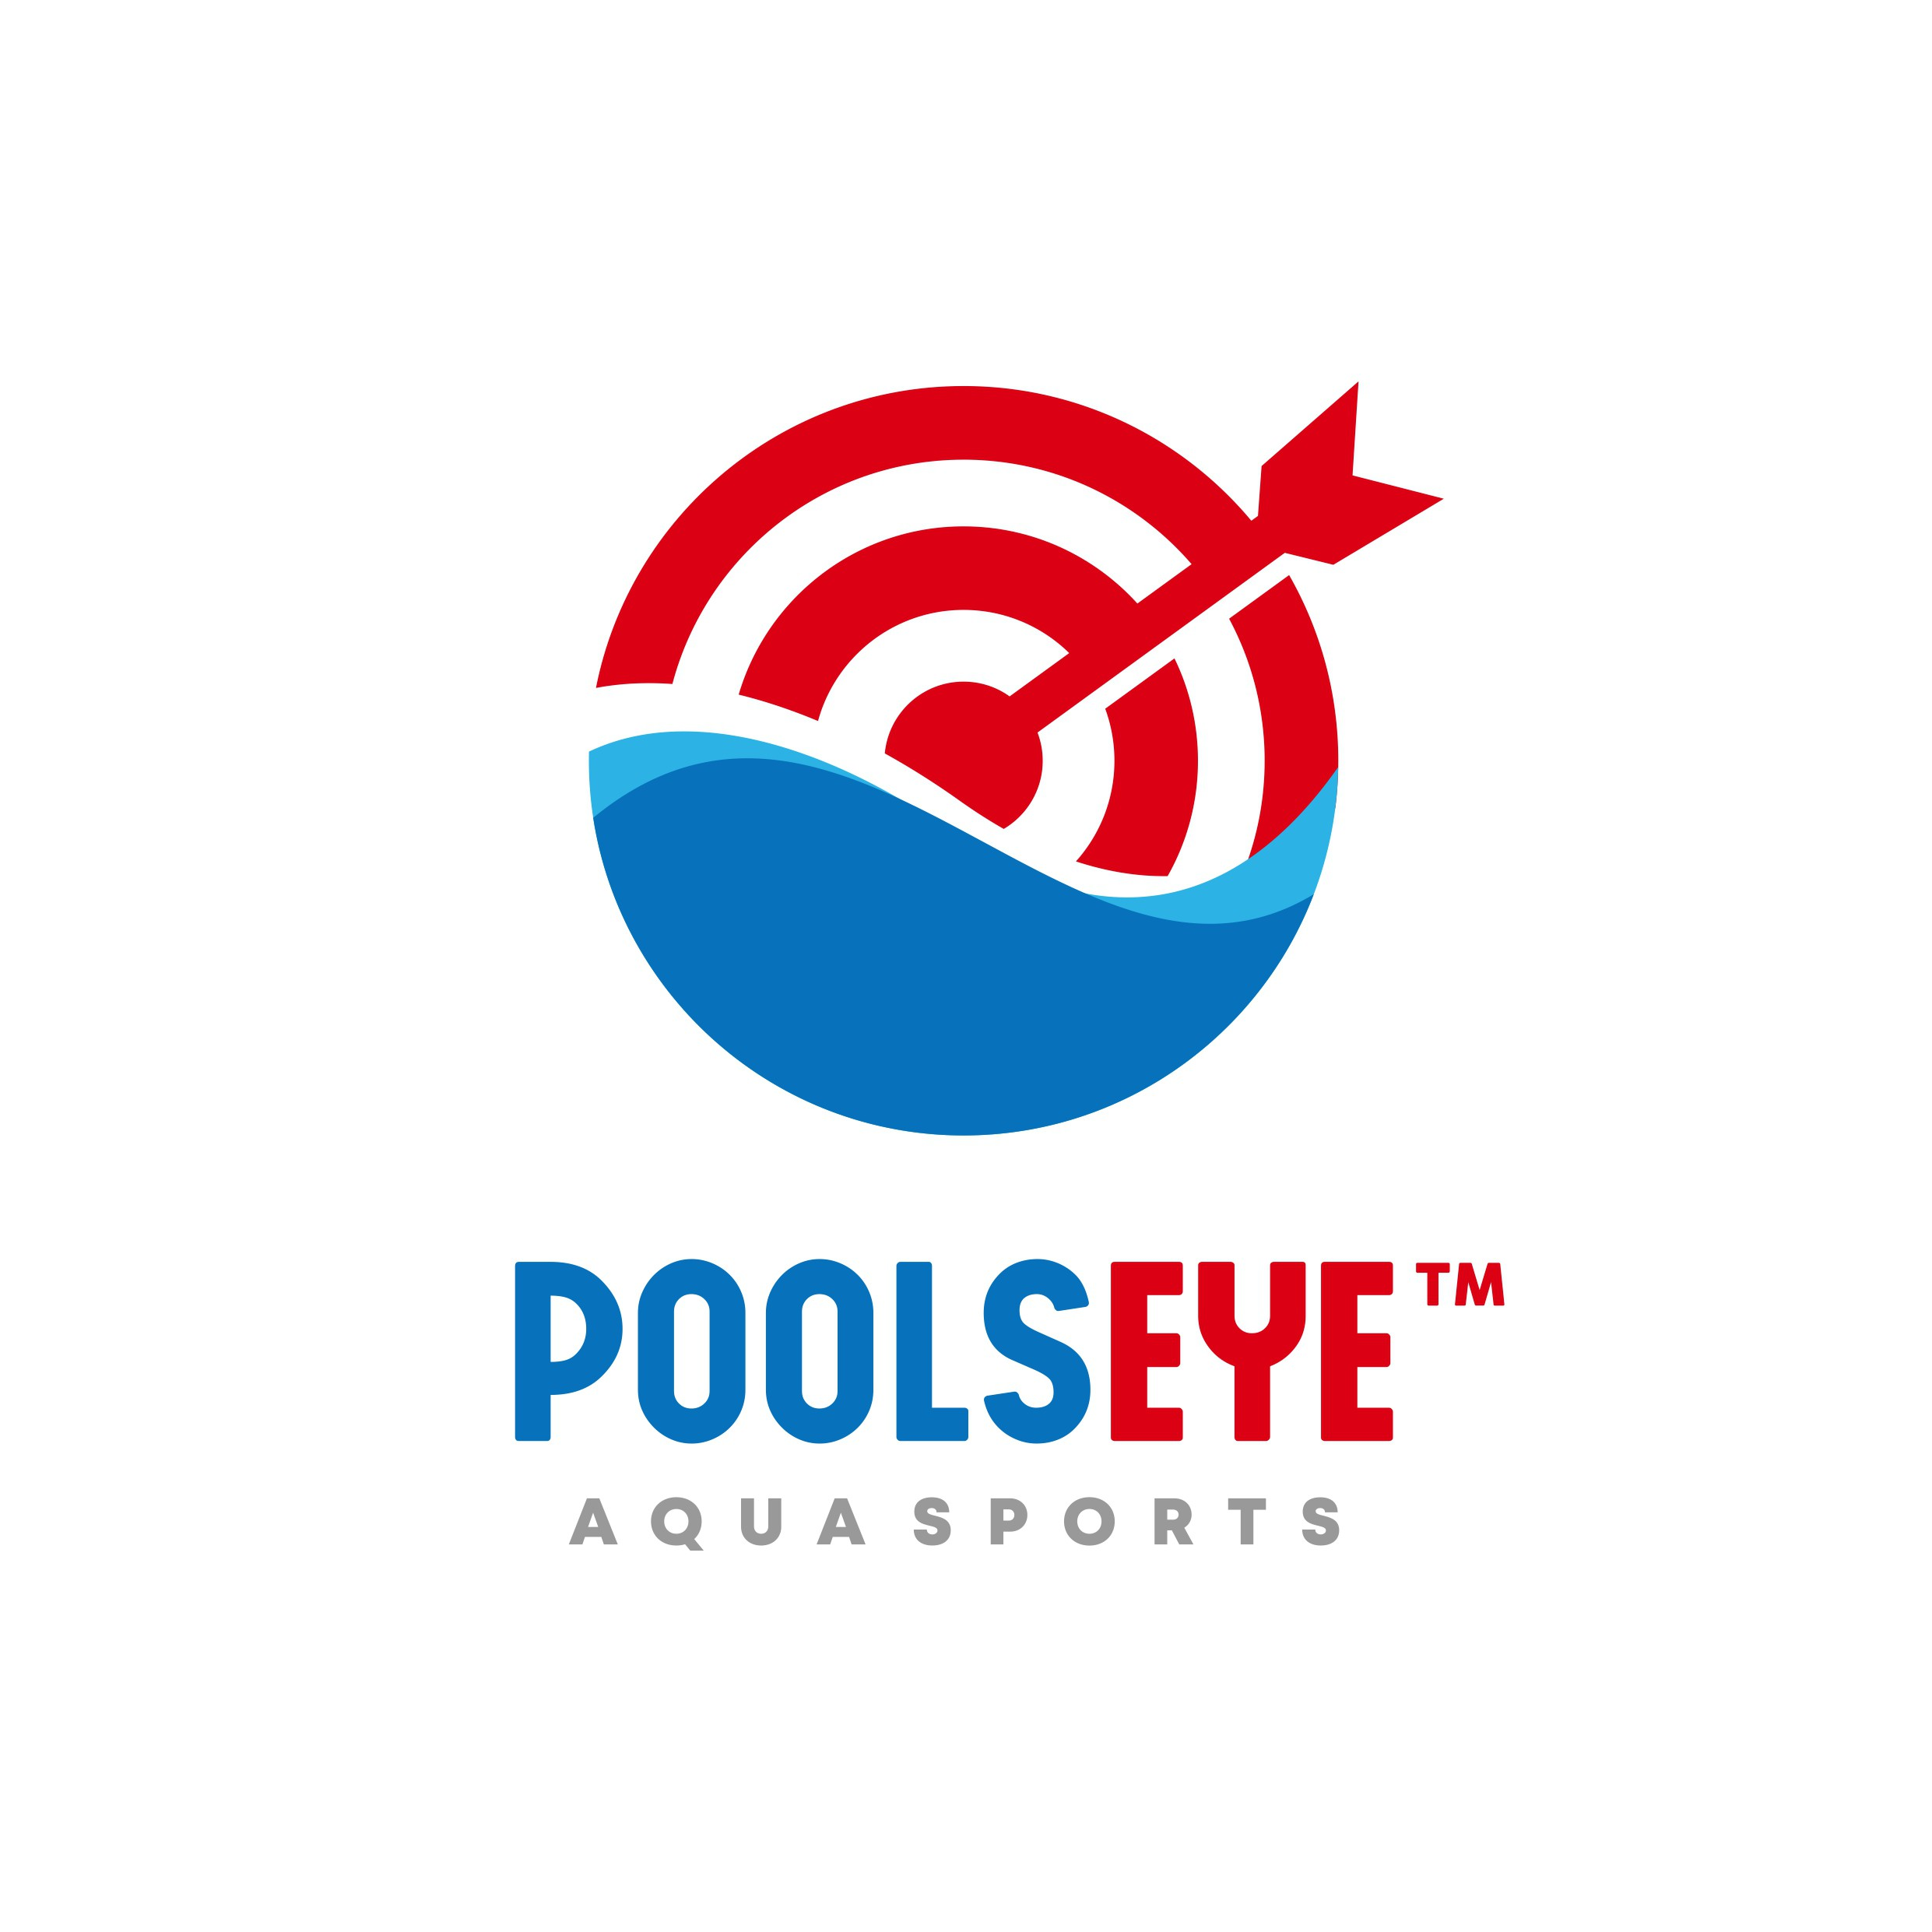 Hit the Target & Win ... design a modern logo for a swimming pool games manufacturer